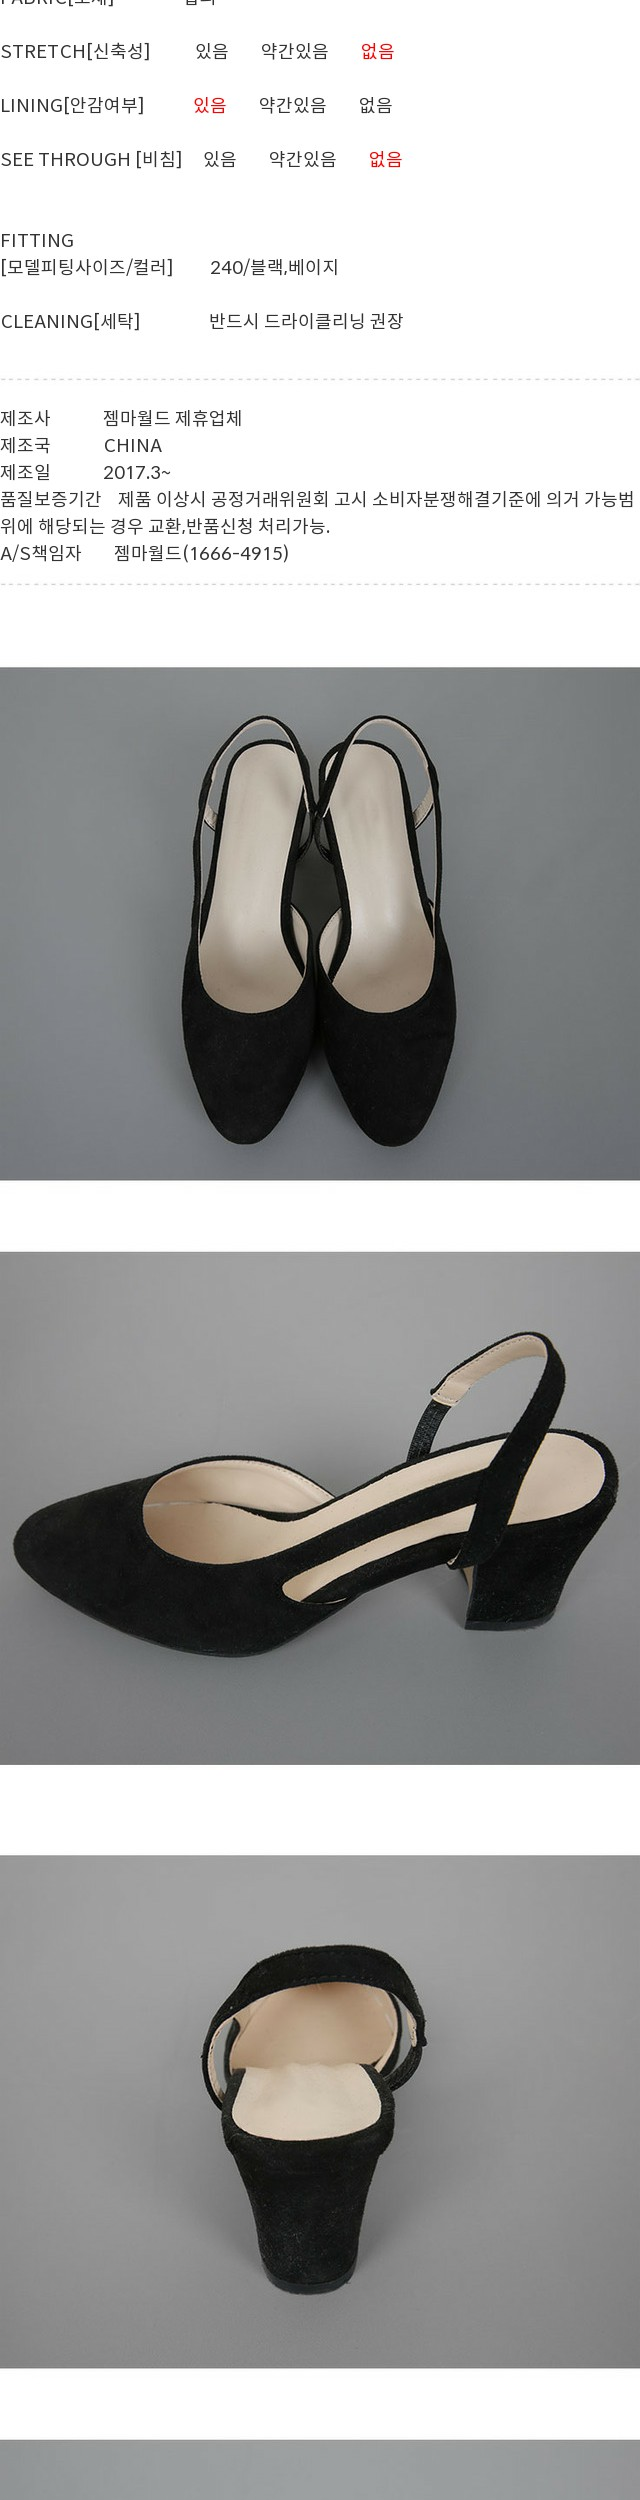 Career - Shoes